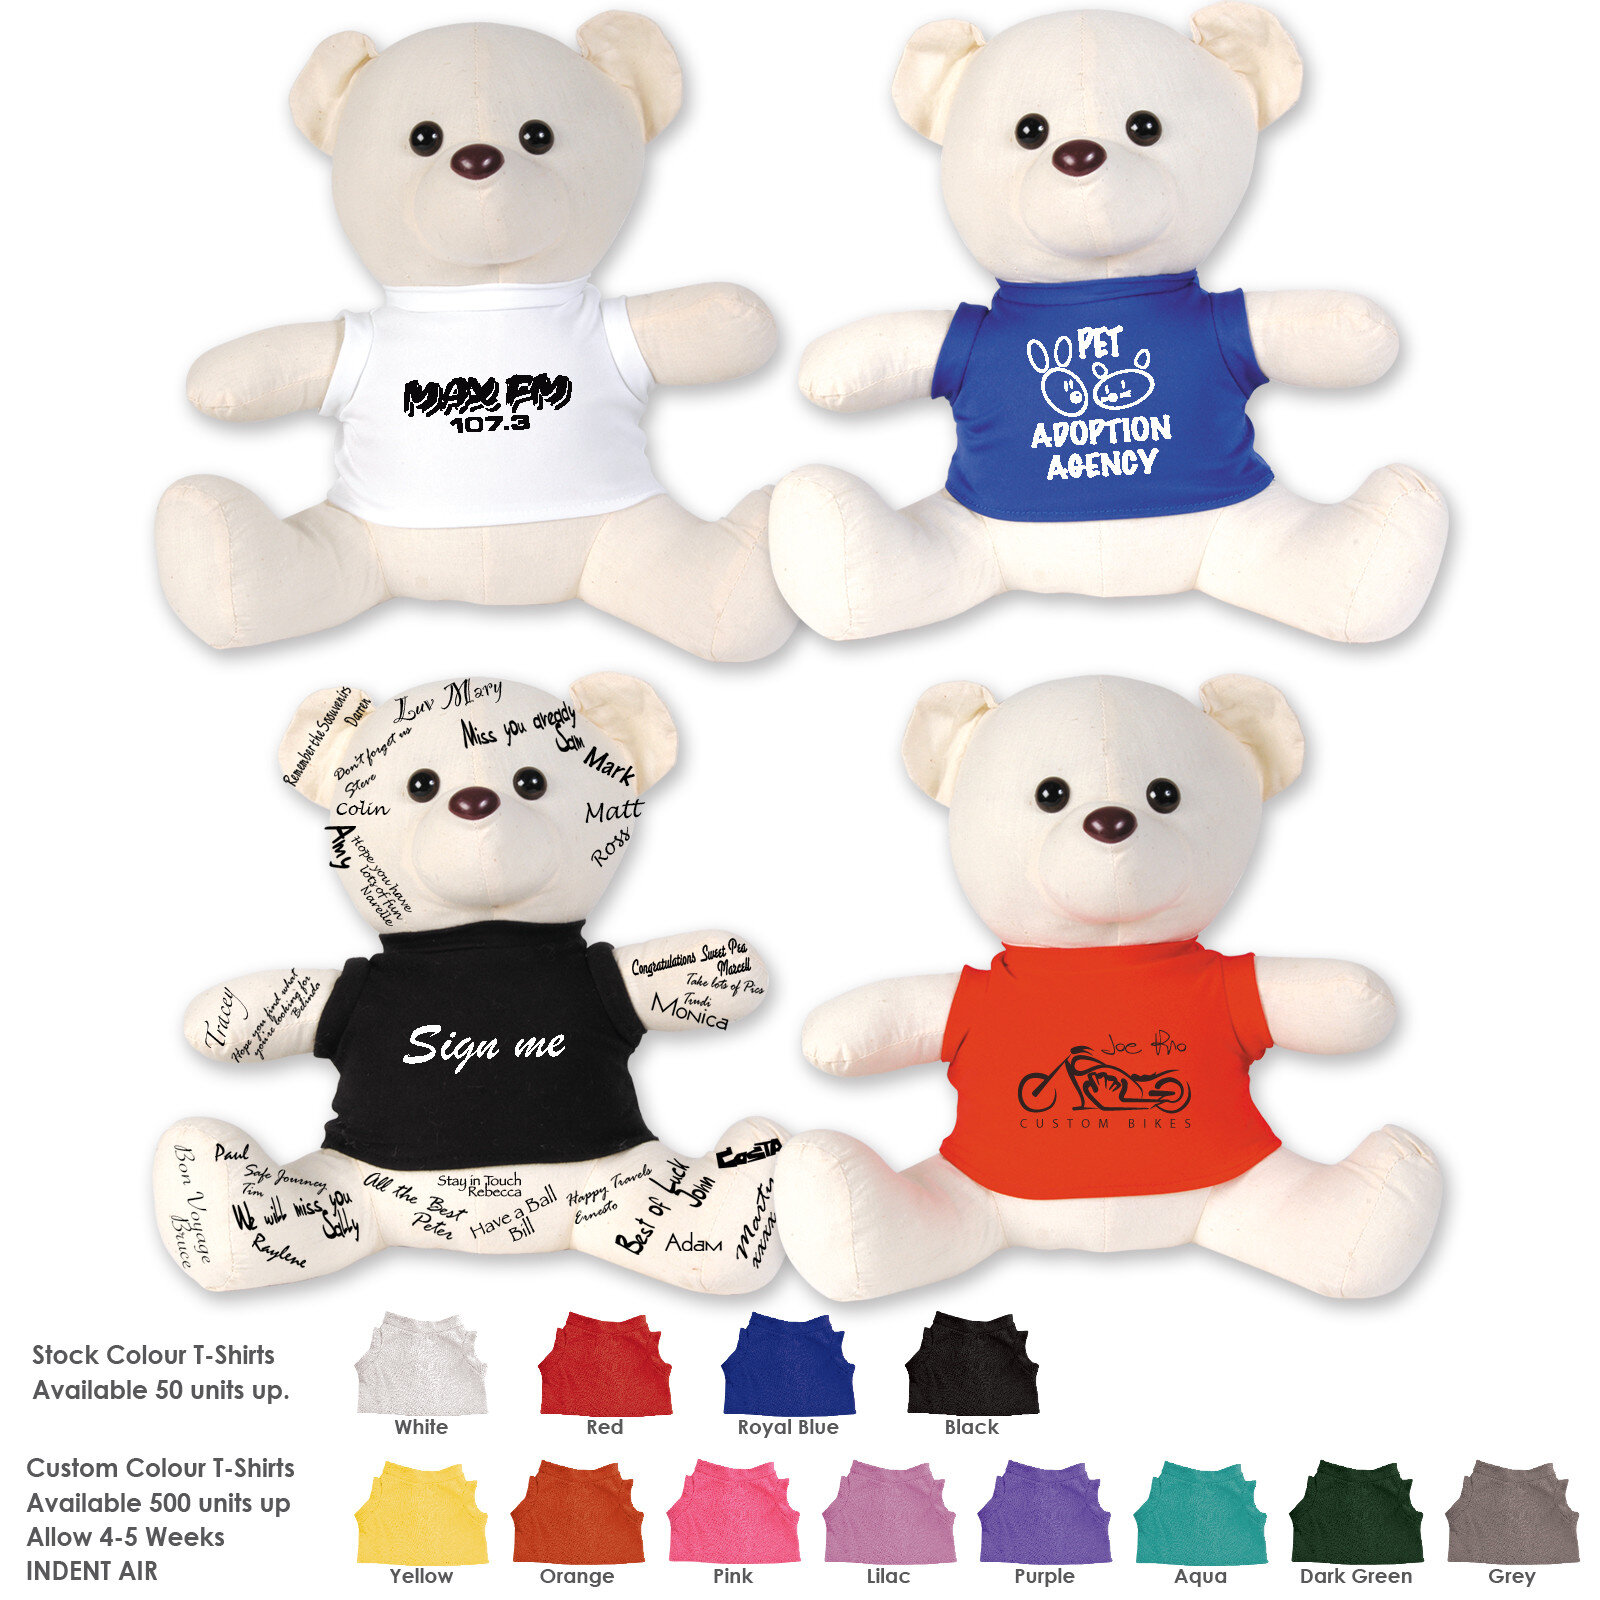 The Original Signature Calico Bear  Minimum Order Quantity 50 units for white, blue, black and red Tshirts with bears / Min 500 for other colours    Request a Quote